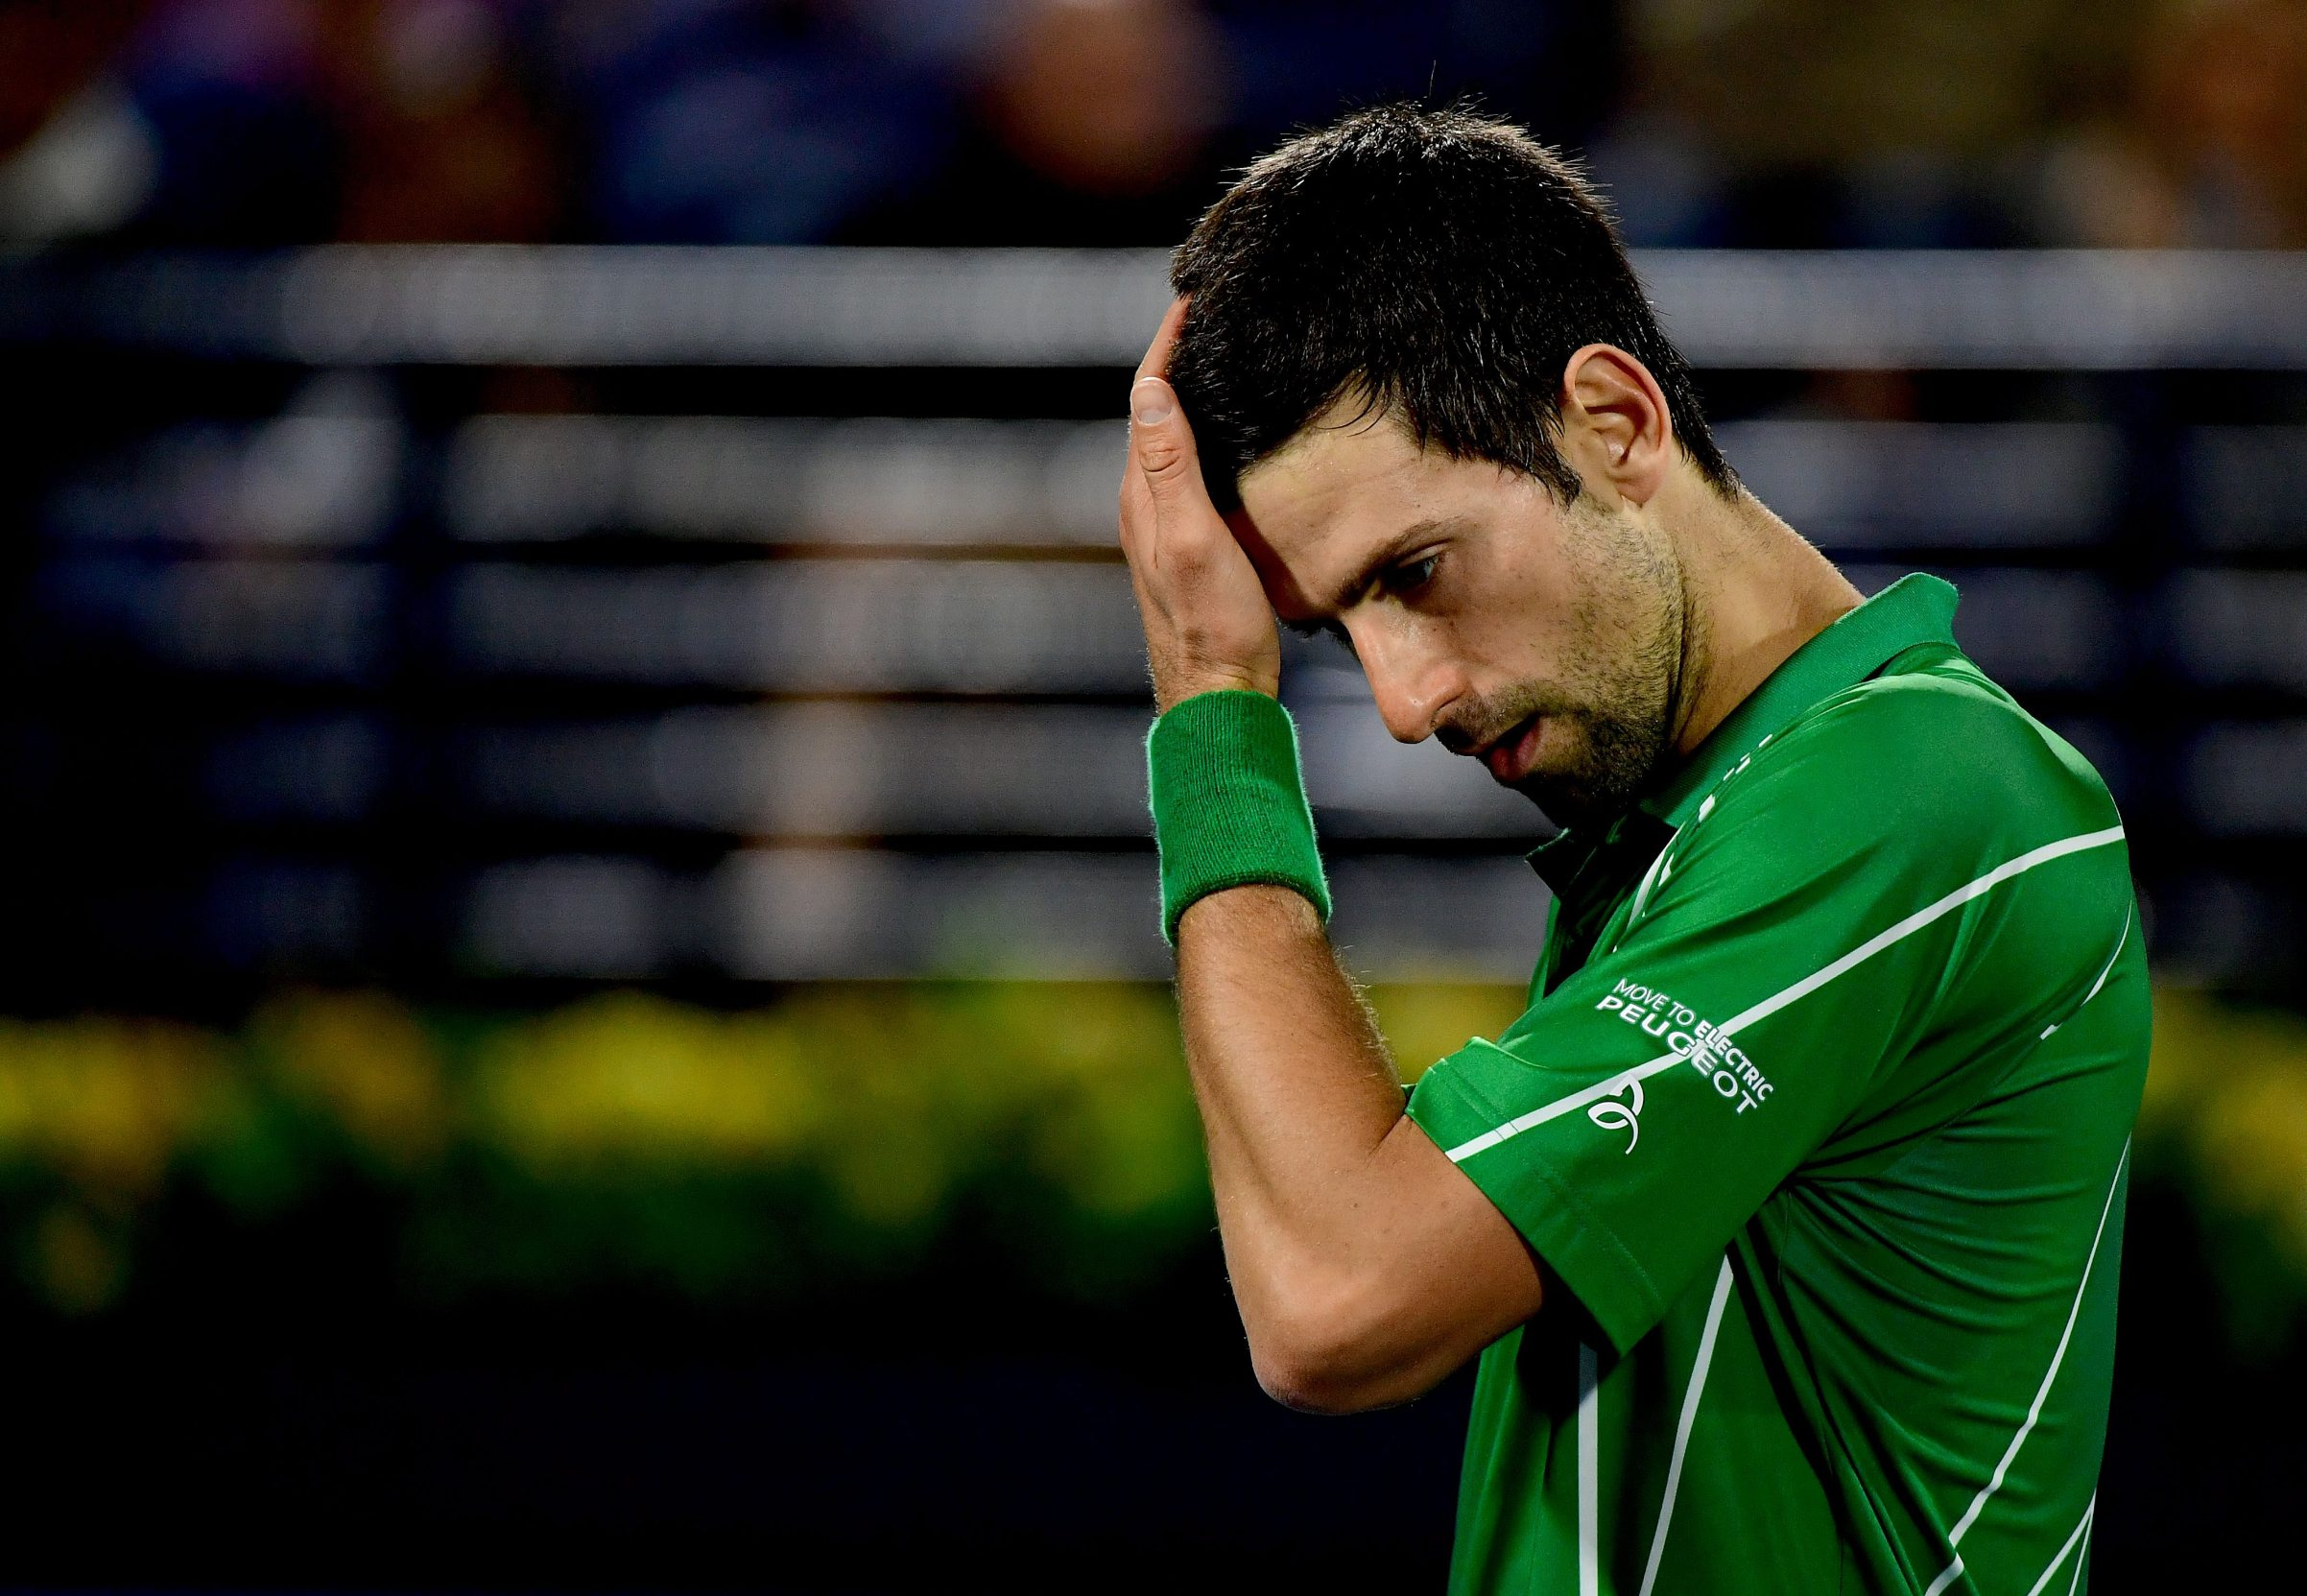 Serbia's Novak Djokovic reacts during the quarter-finals of the Dubai Duty Free Tennis Championship in the Gulf emirate of Dubai on February 27, 2020. (Photo by - / AFP)